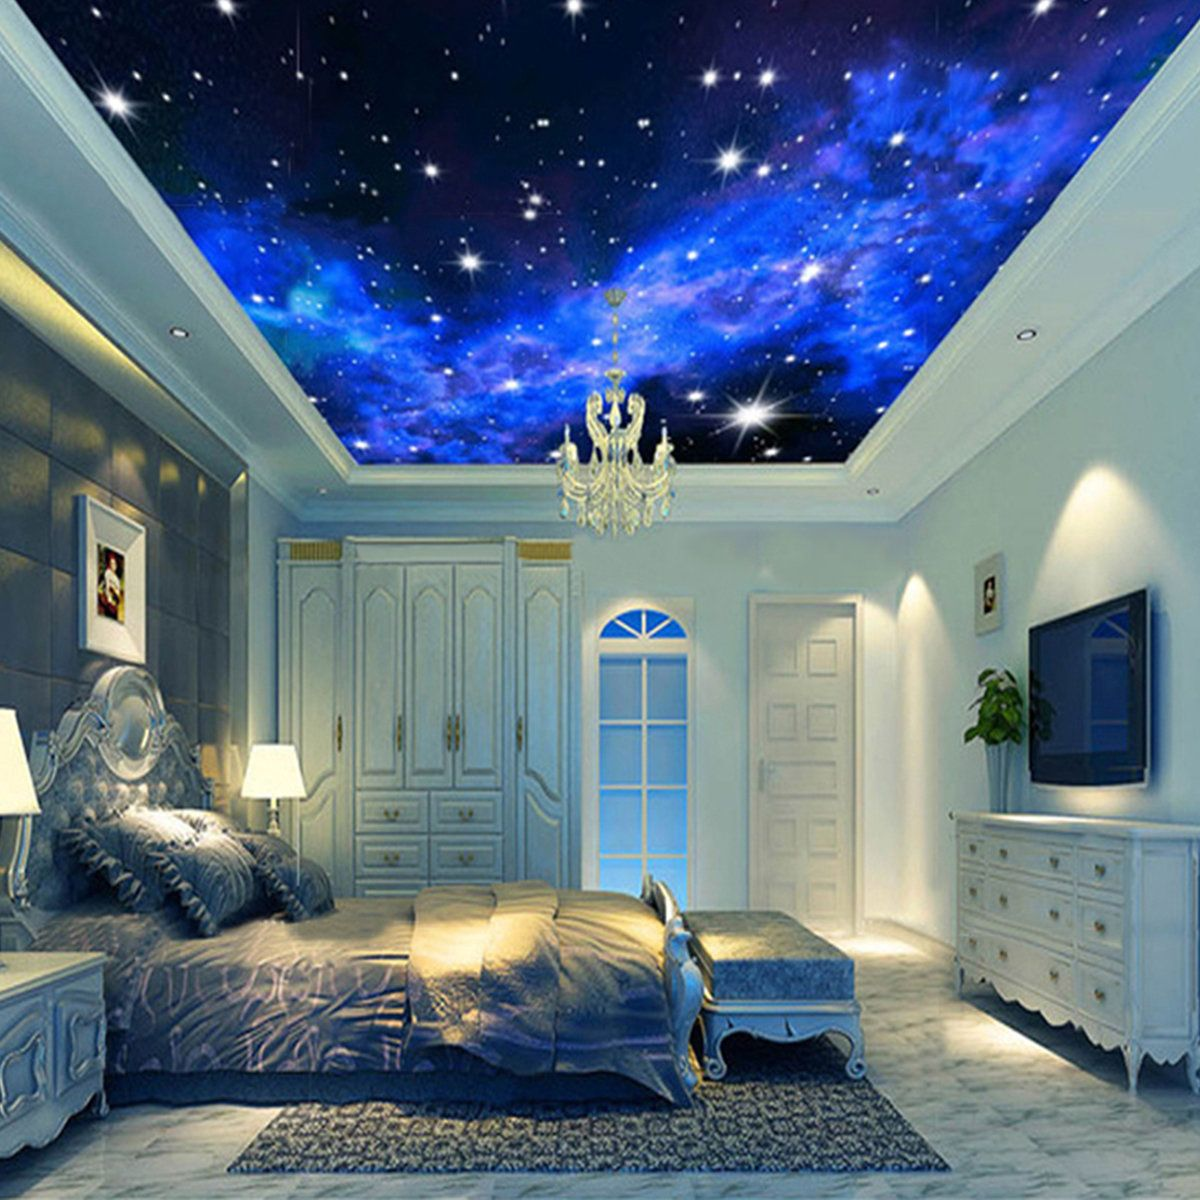 3d Wallpaper Mural Night Clouds Star Sky Wall Paper Background Interior Ceiling Home Decor 3d